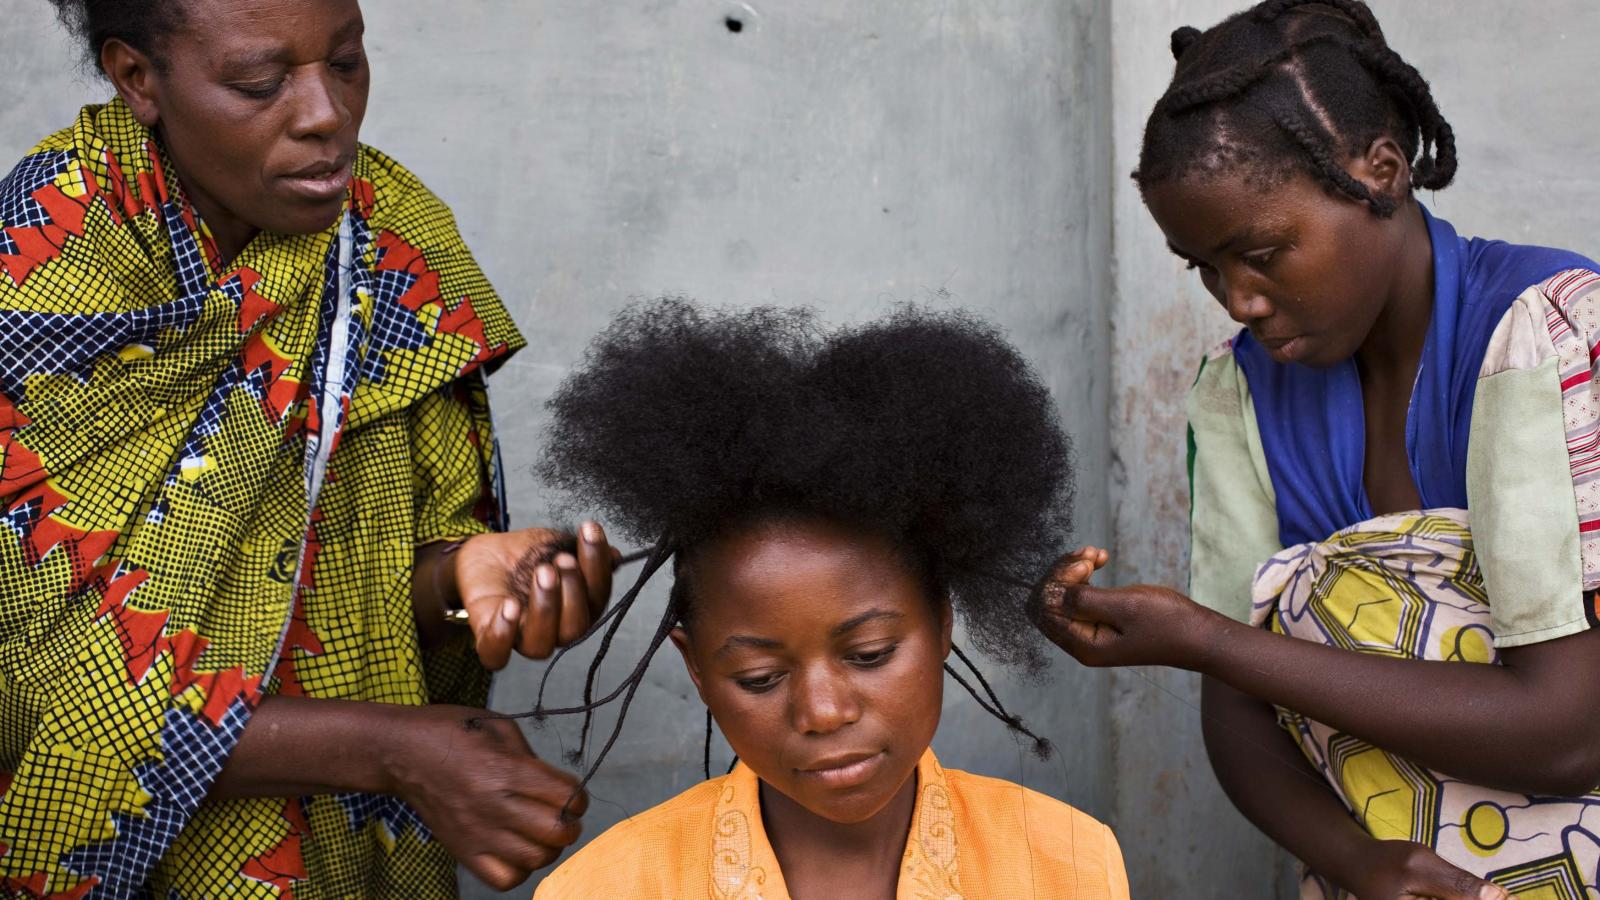 Black Hair Myths From Slavery To Colonialism School Rules And